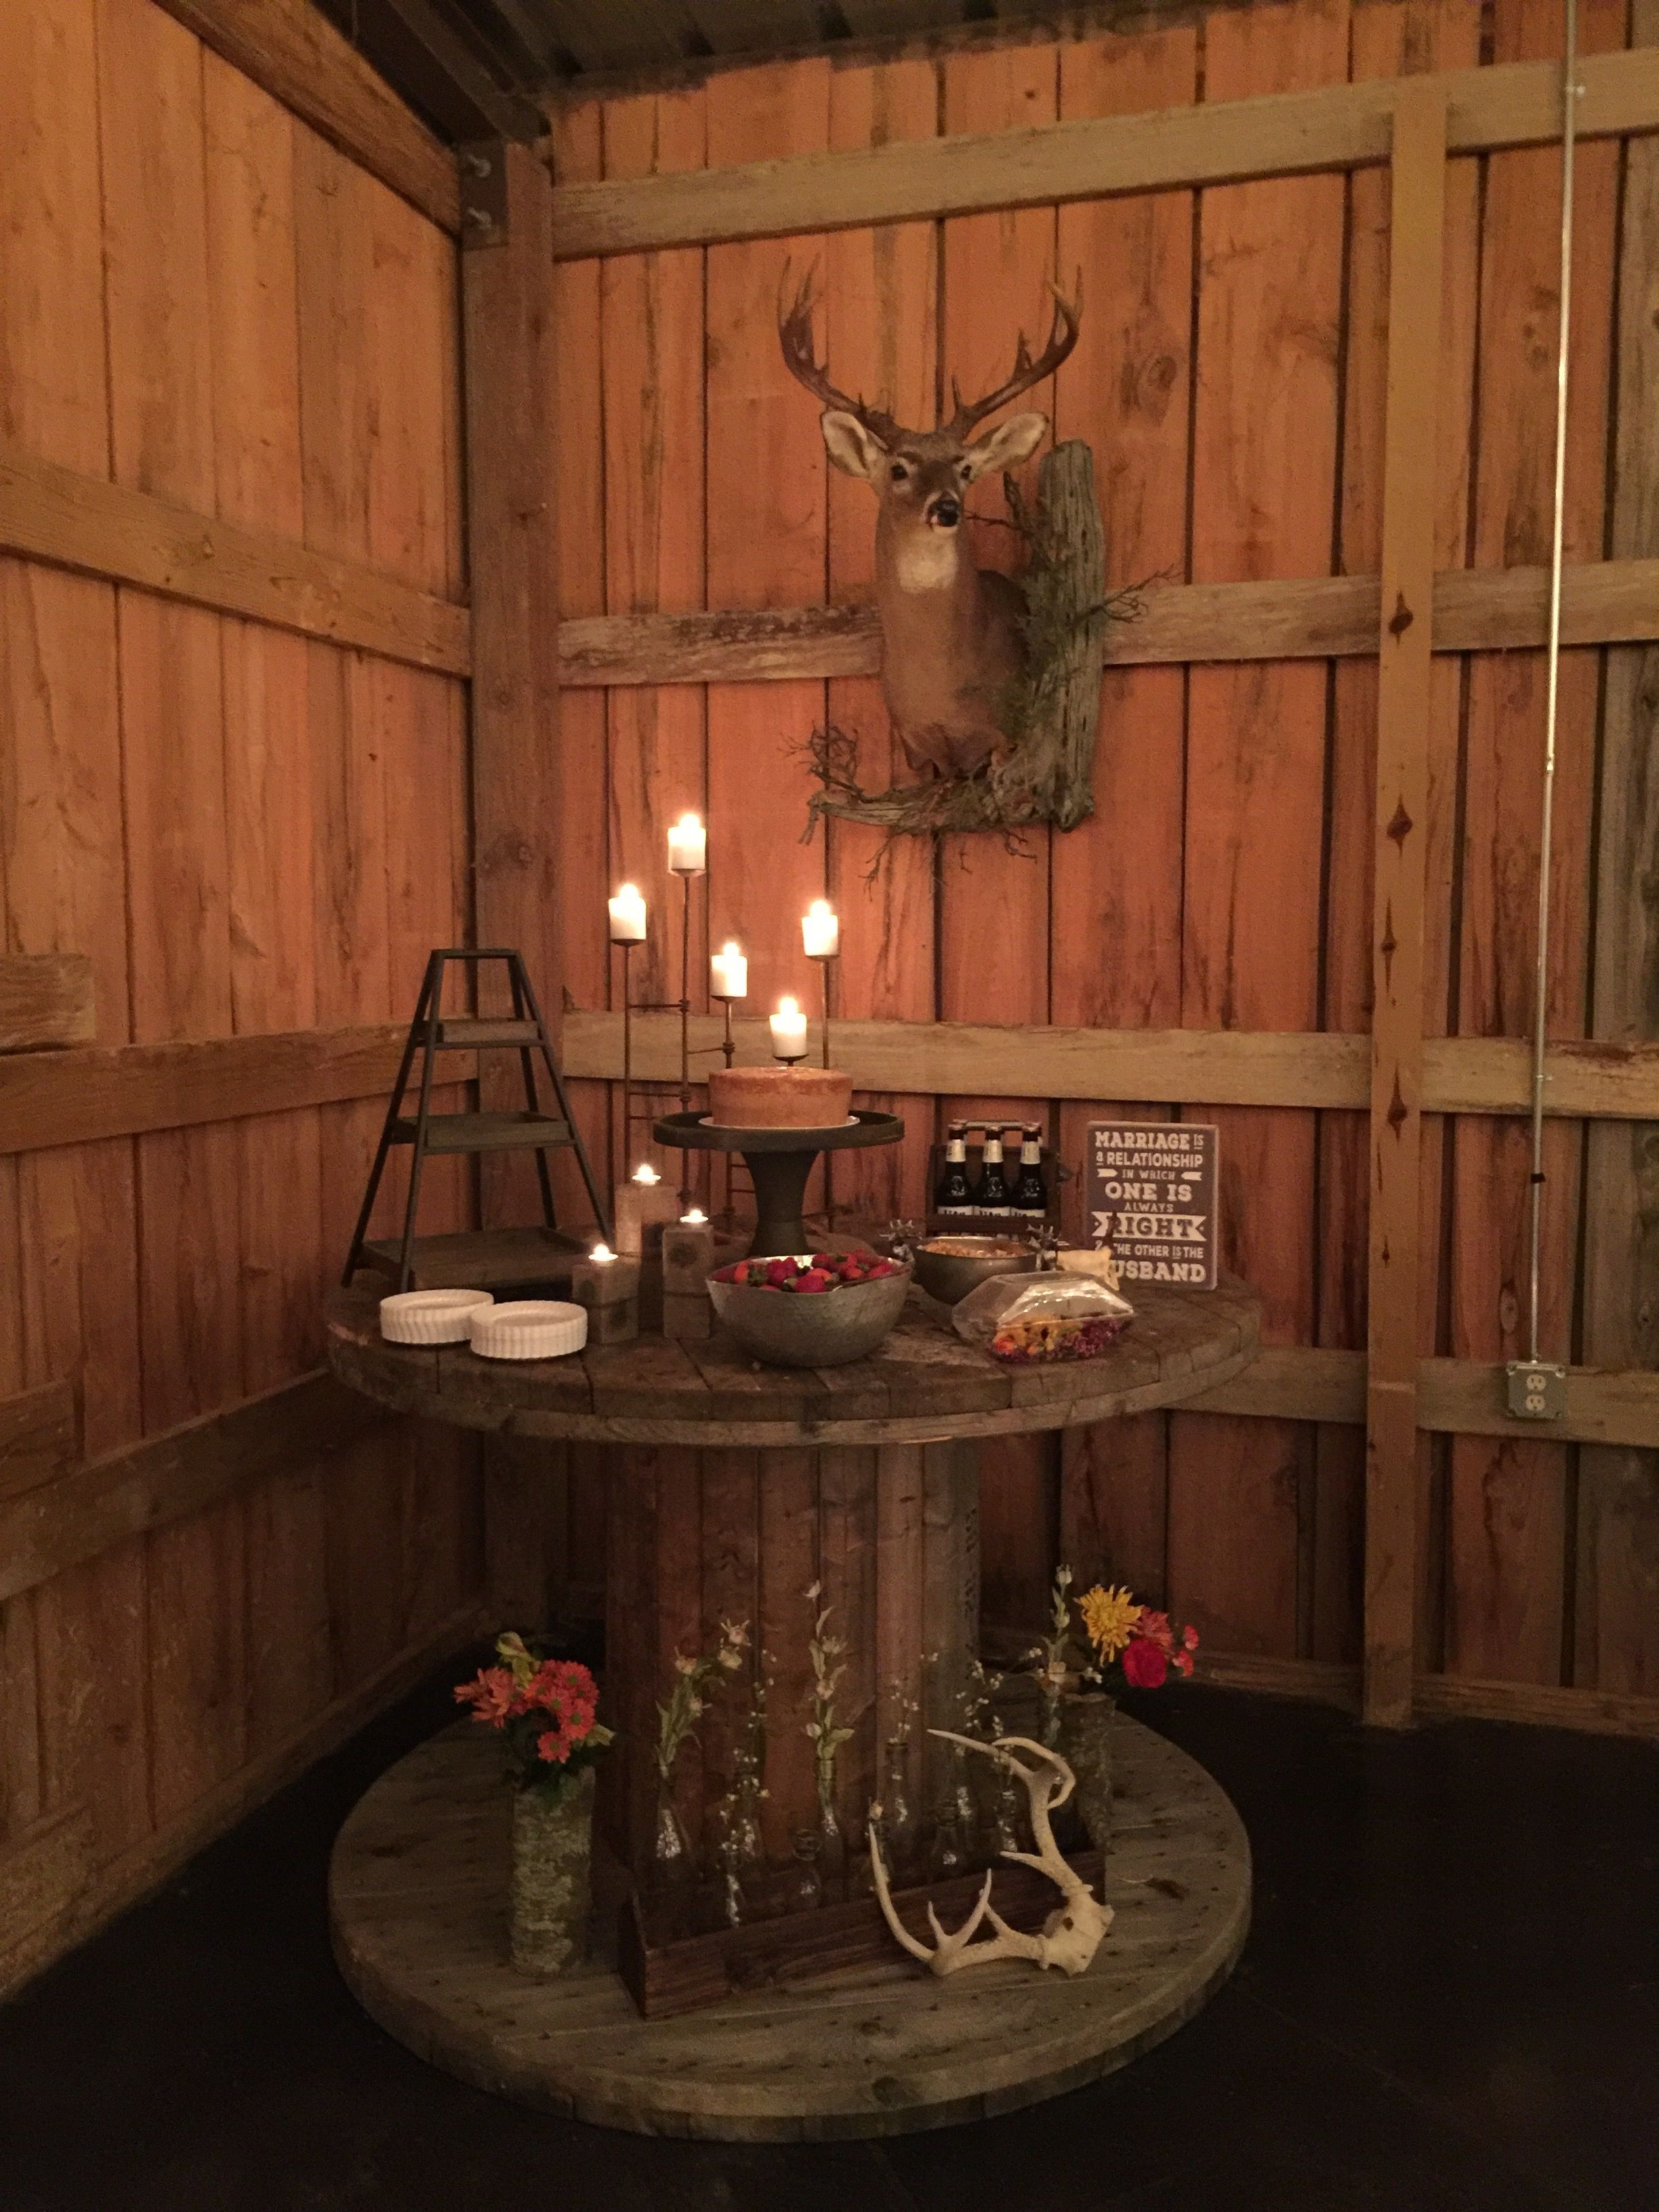 bb17933e5952 Rustic grooms cake table at The Hideaway! | Cake tables at The ...